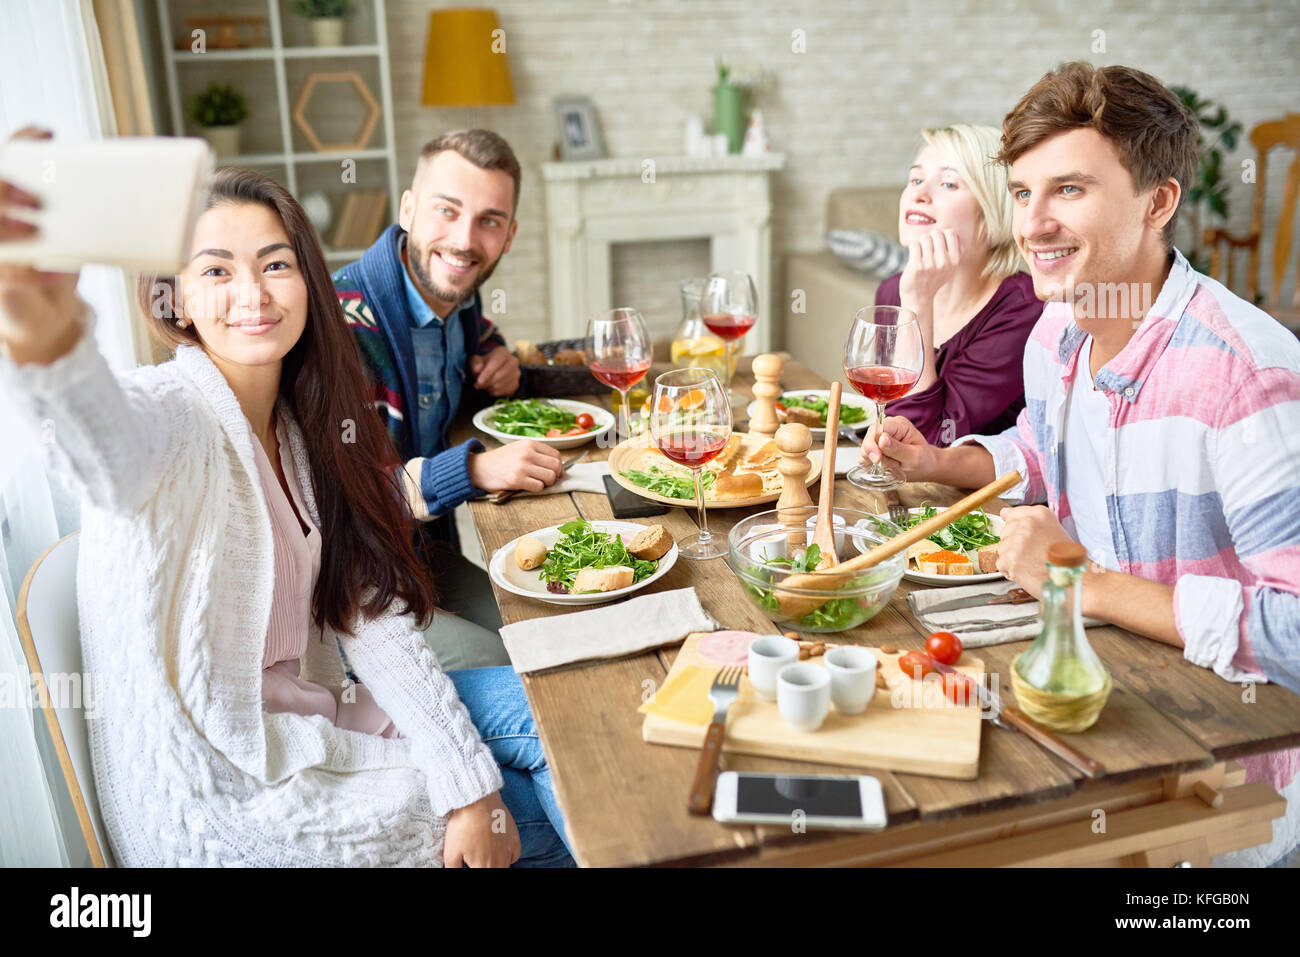 Friends Taking Selfie at Dinner Table - Stock Image